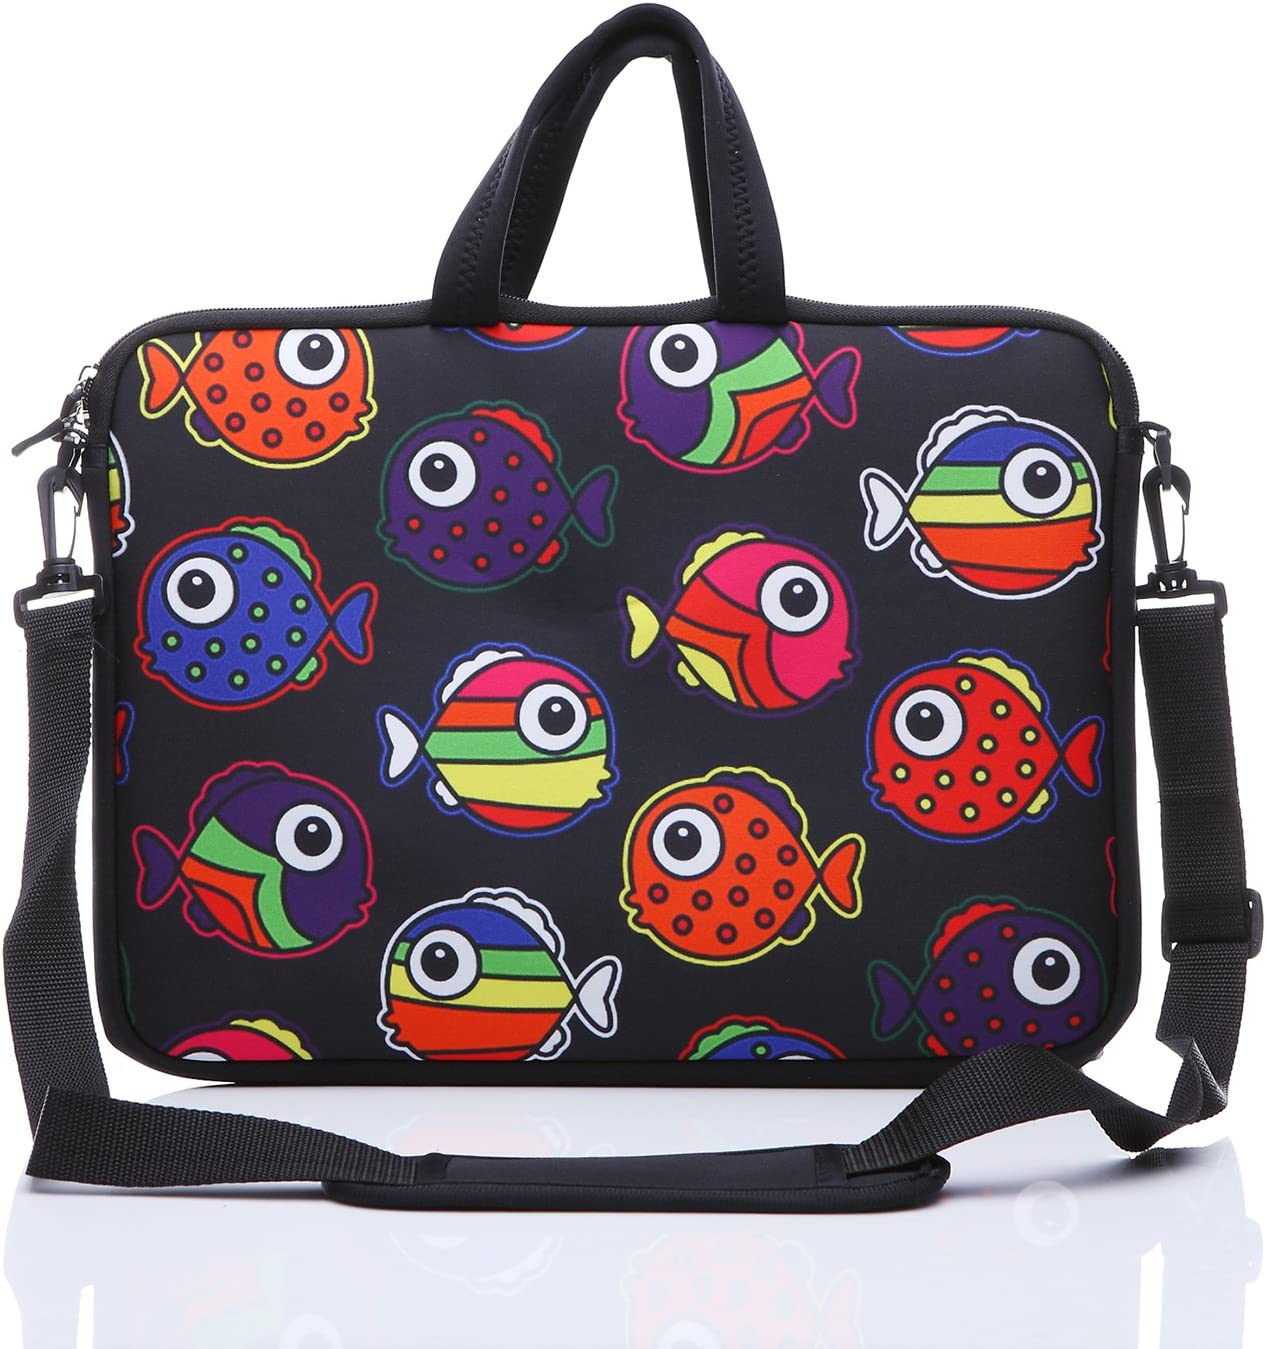 """YIDA 10-Inch Laptop Shoulder Sleeve Case and Tablet Bag for Most 9.7"""" 10"""" 10.1"""" 10.2"""" Ipad/Notebook/eBook/Readers (Black red Fish)"""